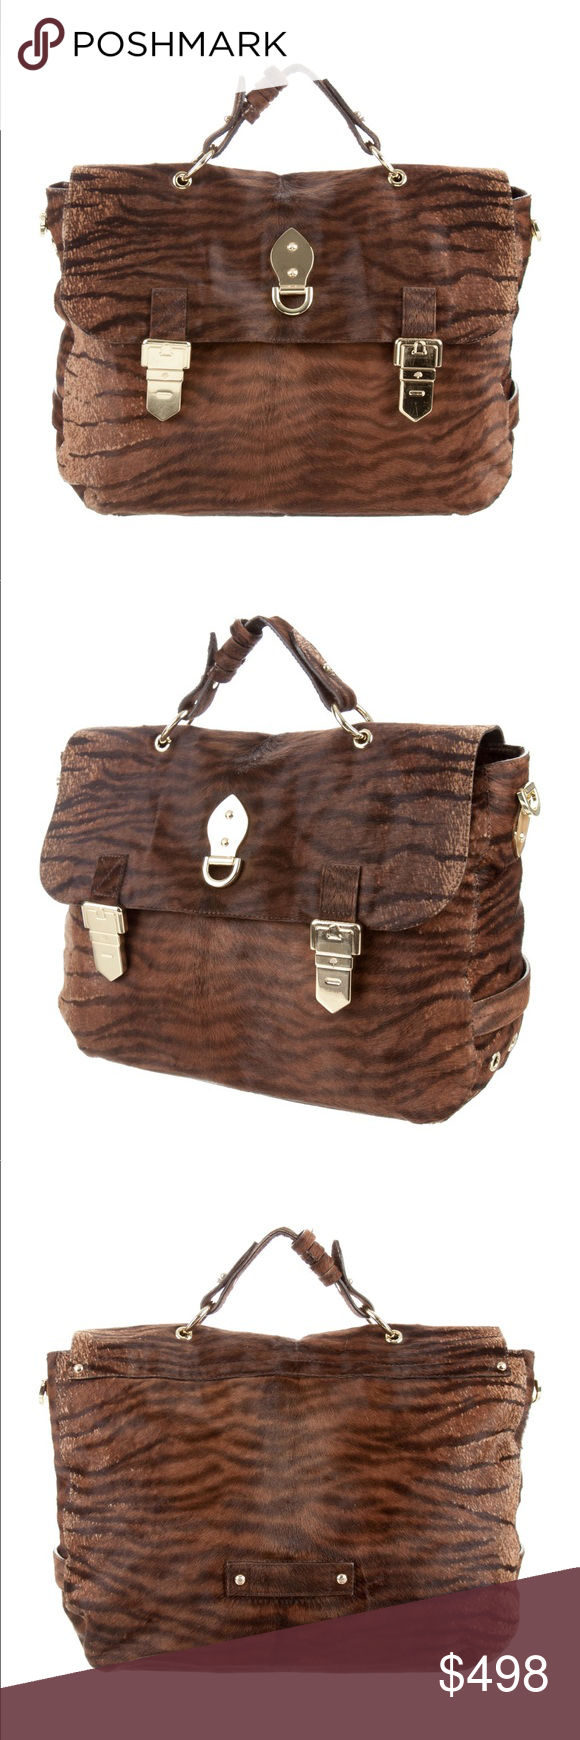 Mulberry Ponyhair Tillie Tiger Print Satchel Monochrome brown printed  ponyhair Mulberry Tillie Satchel with gold tone 81e97b1a12